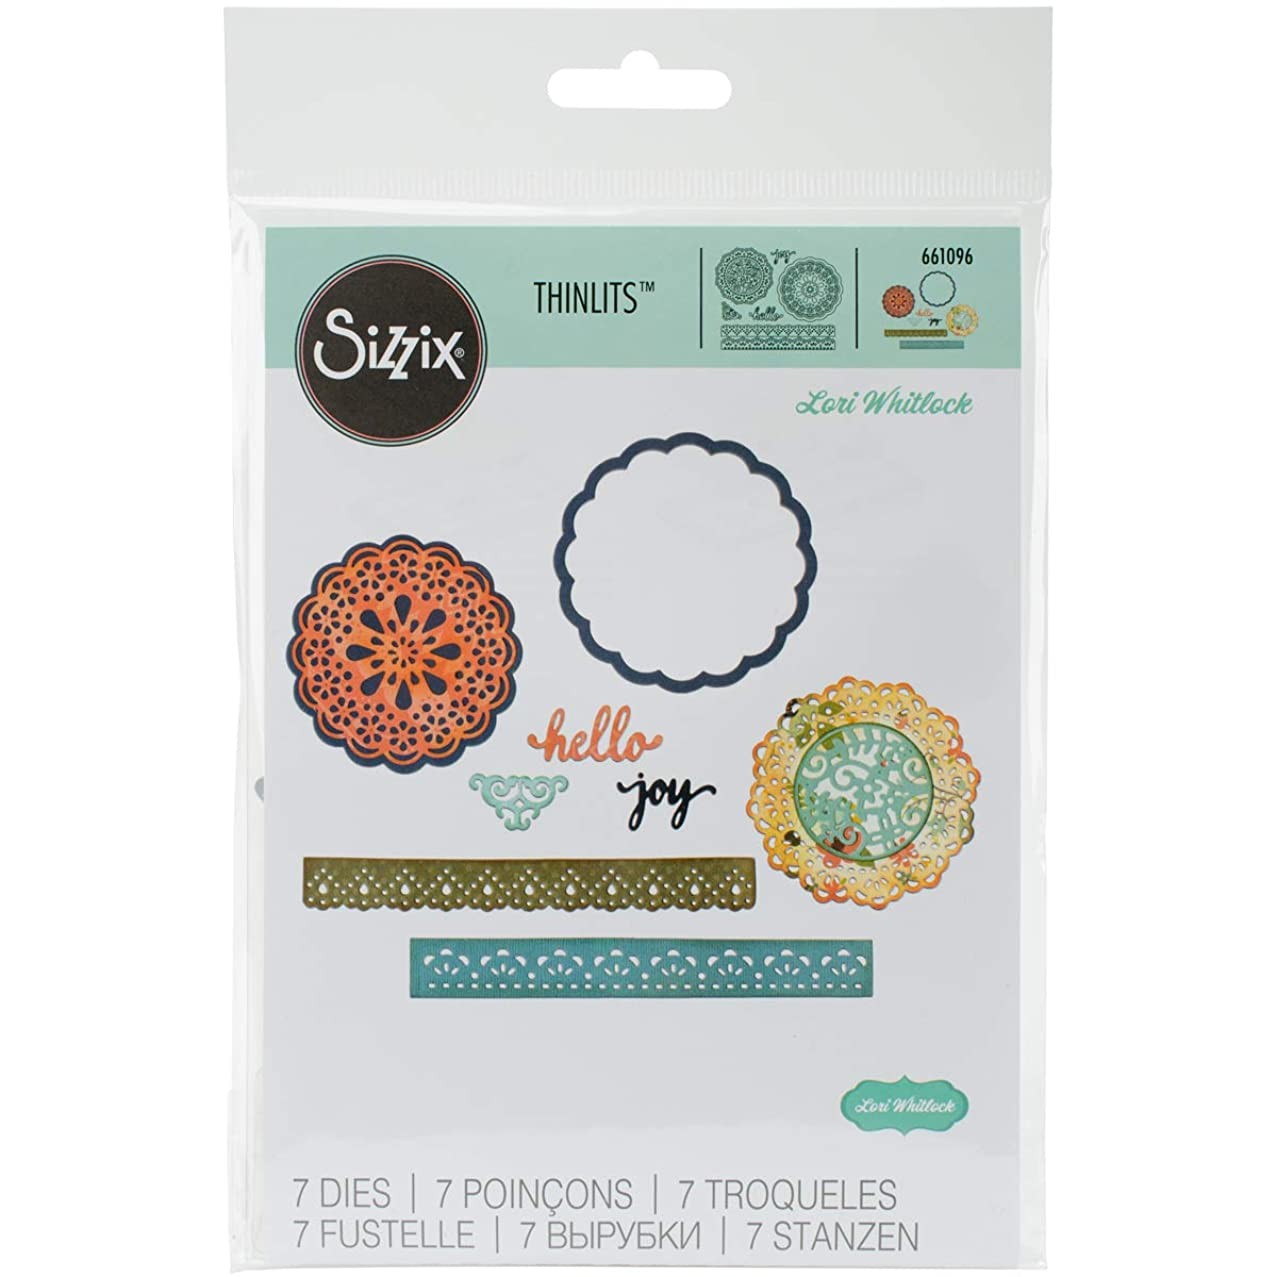 Sizzix Thinlits Die Set, Hello Doily by Lori Whitlock, 7-Pack